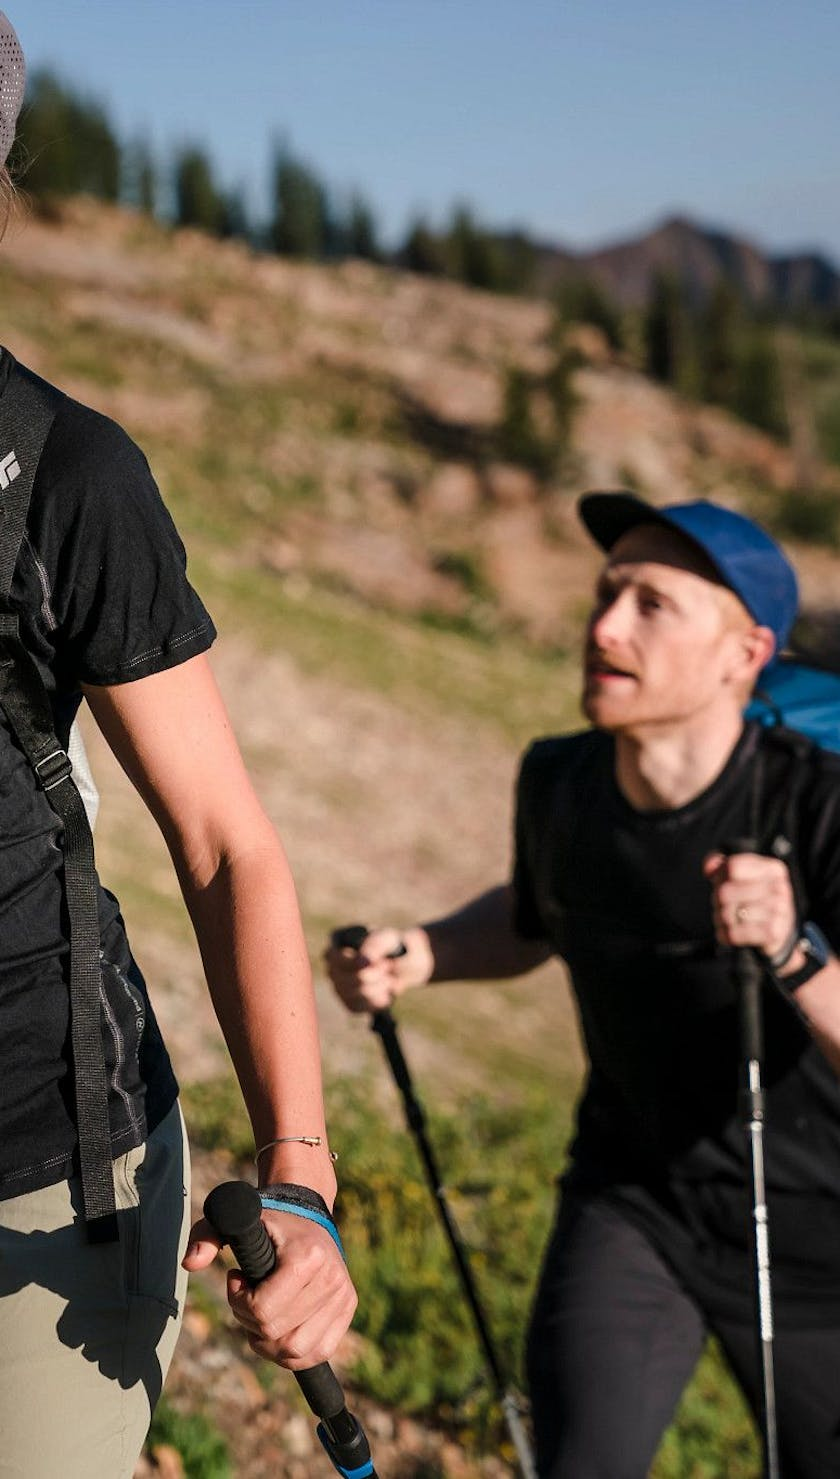 Mary McIntyre wearing a W Flux Merino shirt while hiking with a man outside